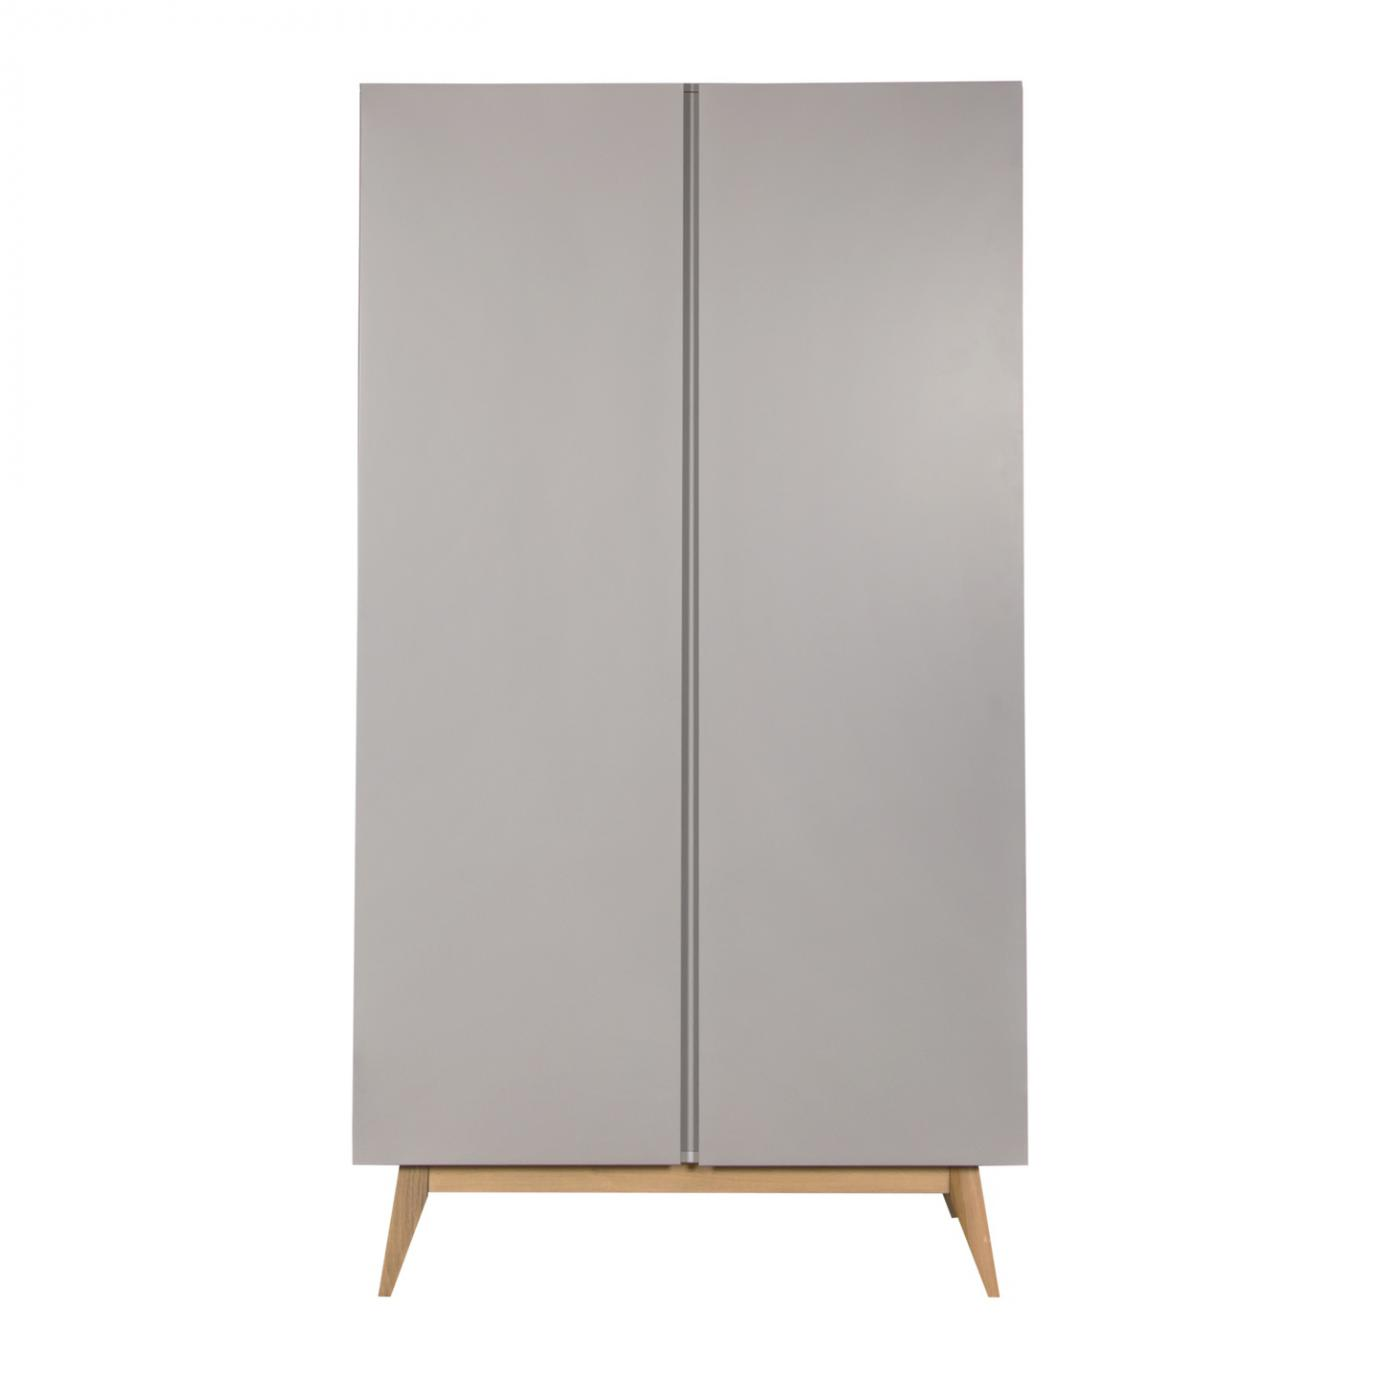 Trendy armoire 2 portes Griffin Grey  de Quax